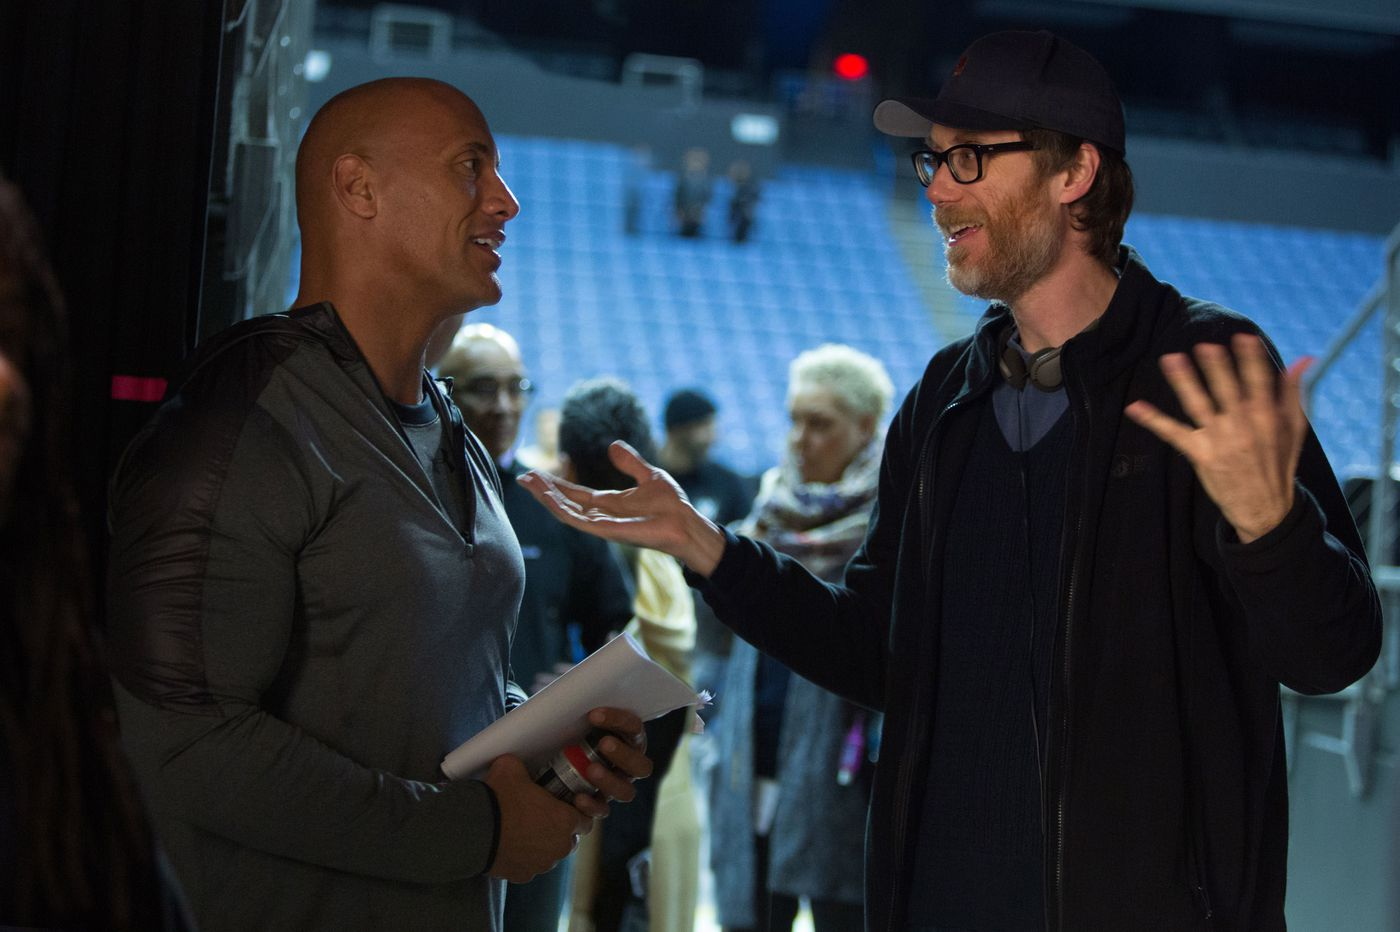 Stephen Merchant, aka the guy who created 'The Office,' talks about his buddy the Rock and wrestling with drama in 'Fighting with My Family'